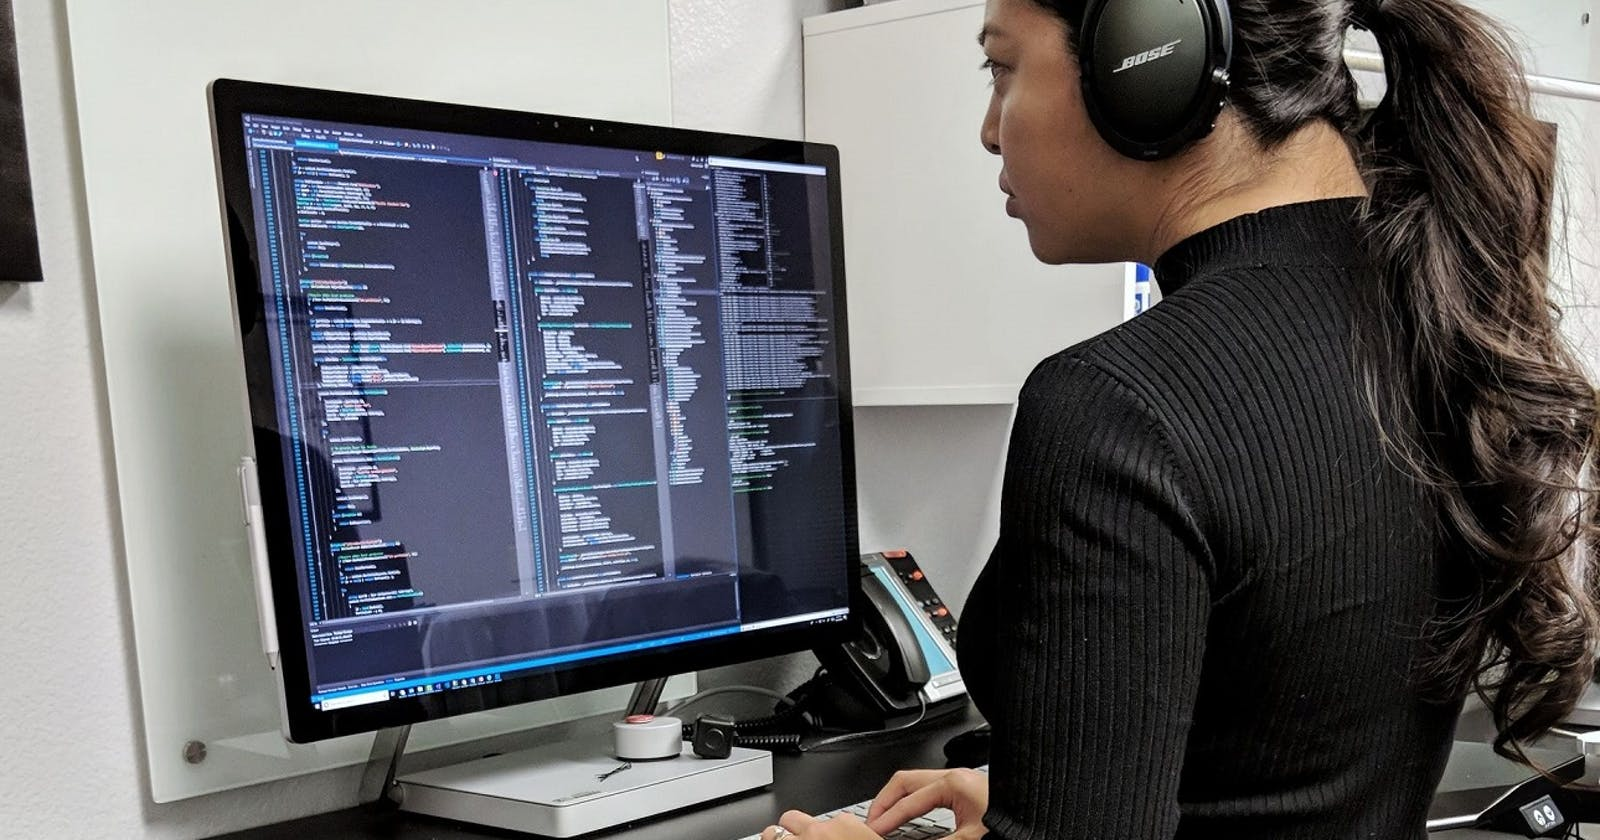 Three things I wish I knew before becoming a software developer